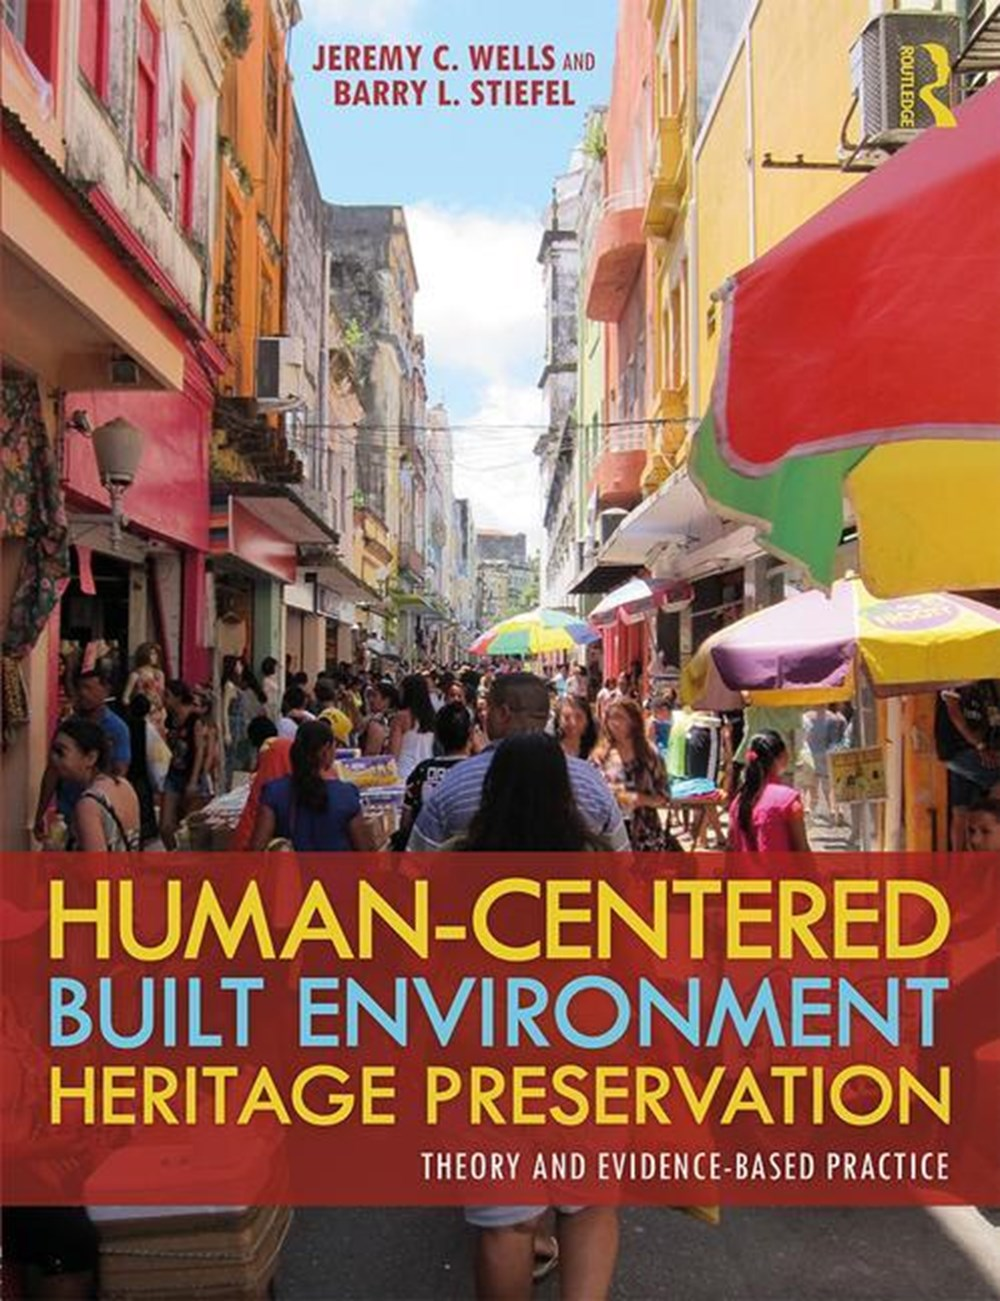 Human-Centered Built Environment Heritage Preservation Theory and Evidence-Based Practice